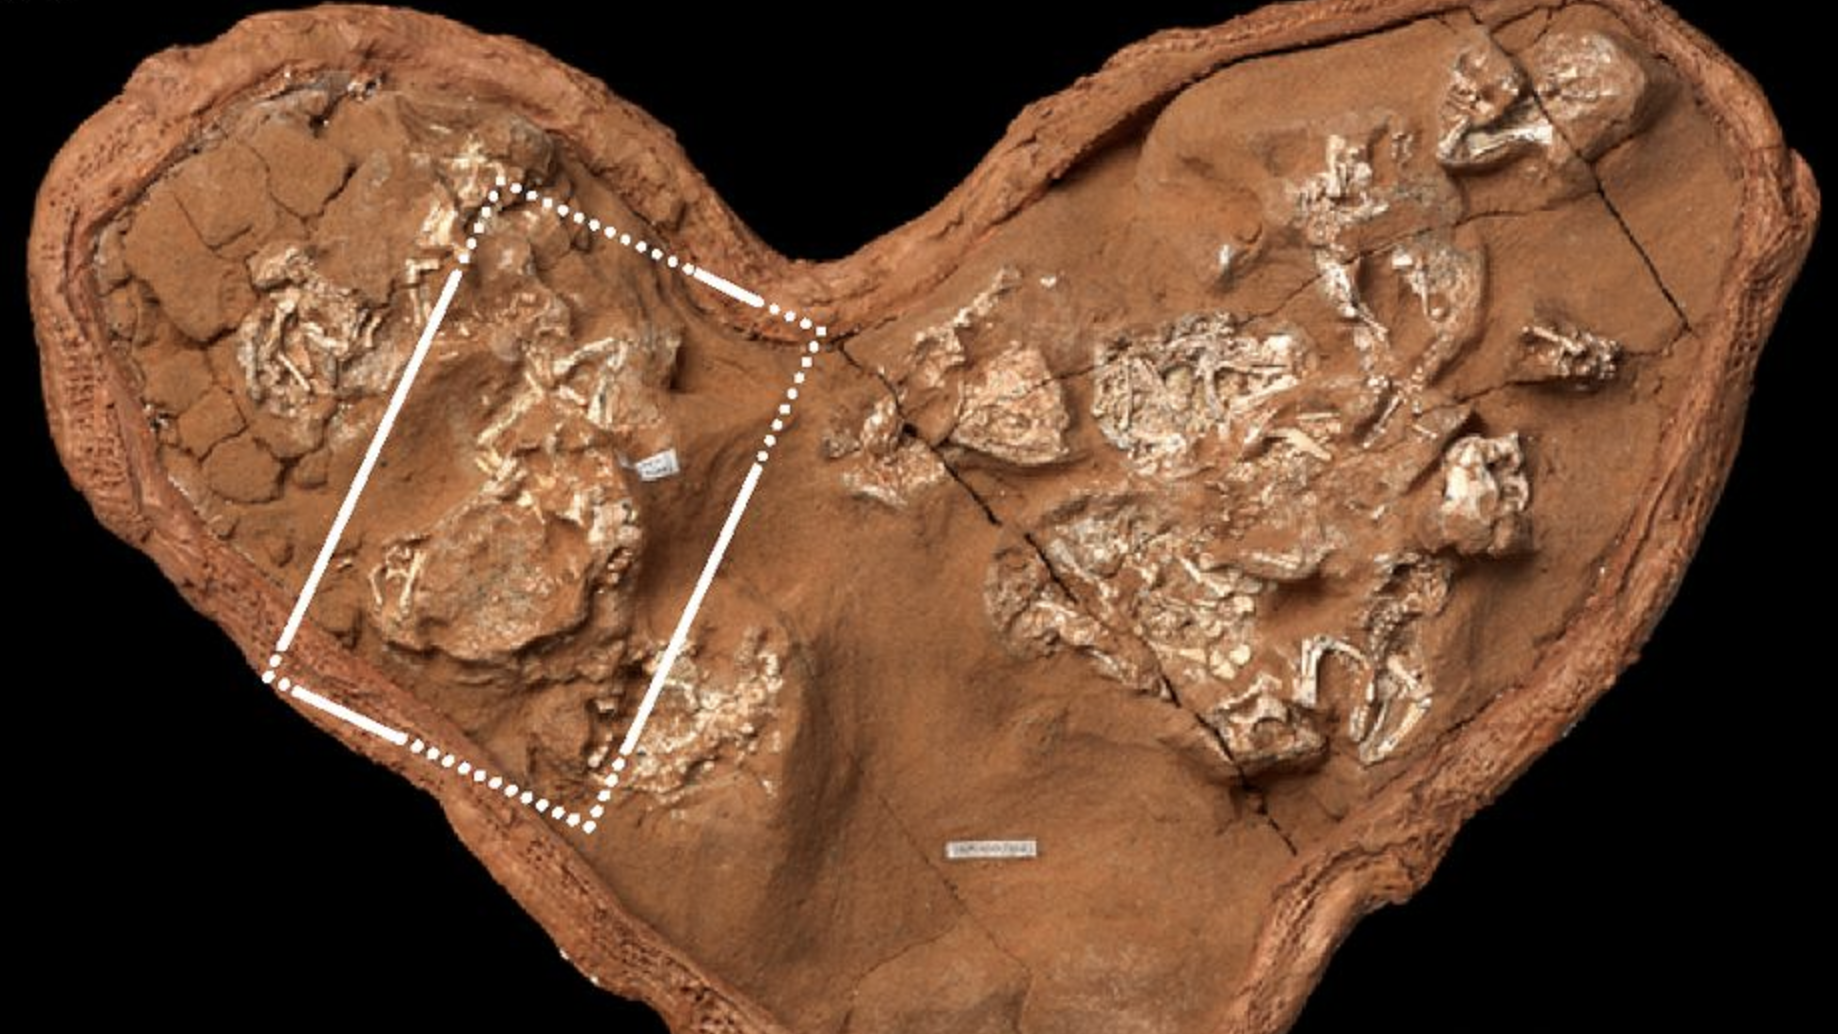 New Dino Research Complicates Previous Beliefs